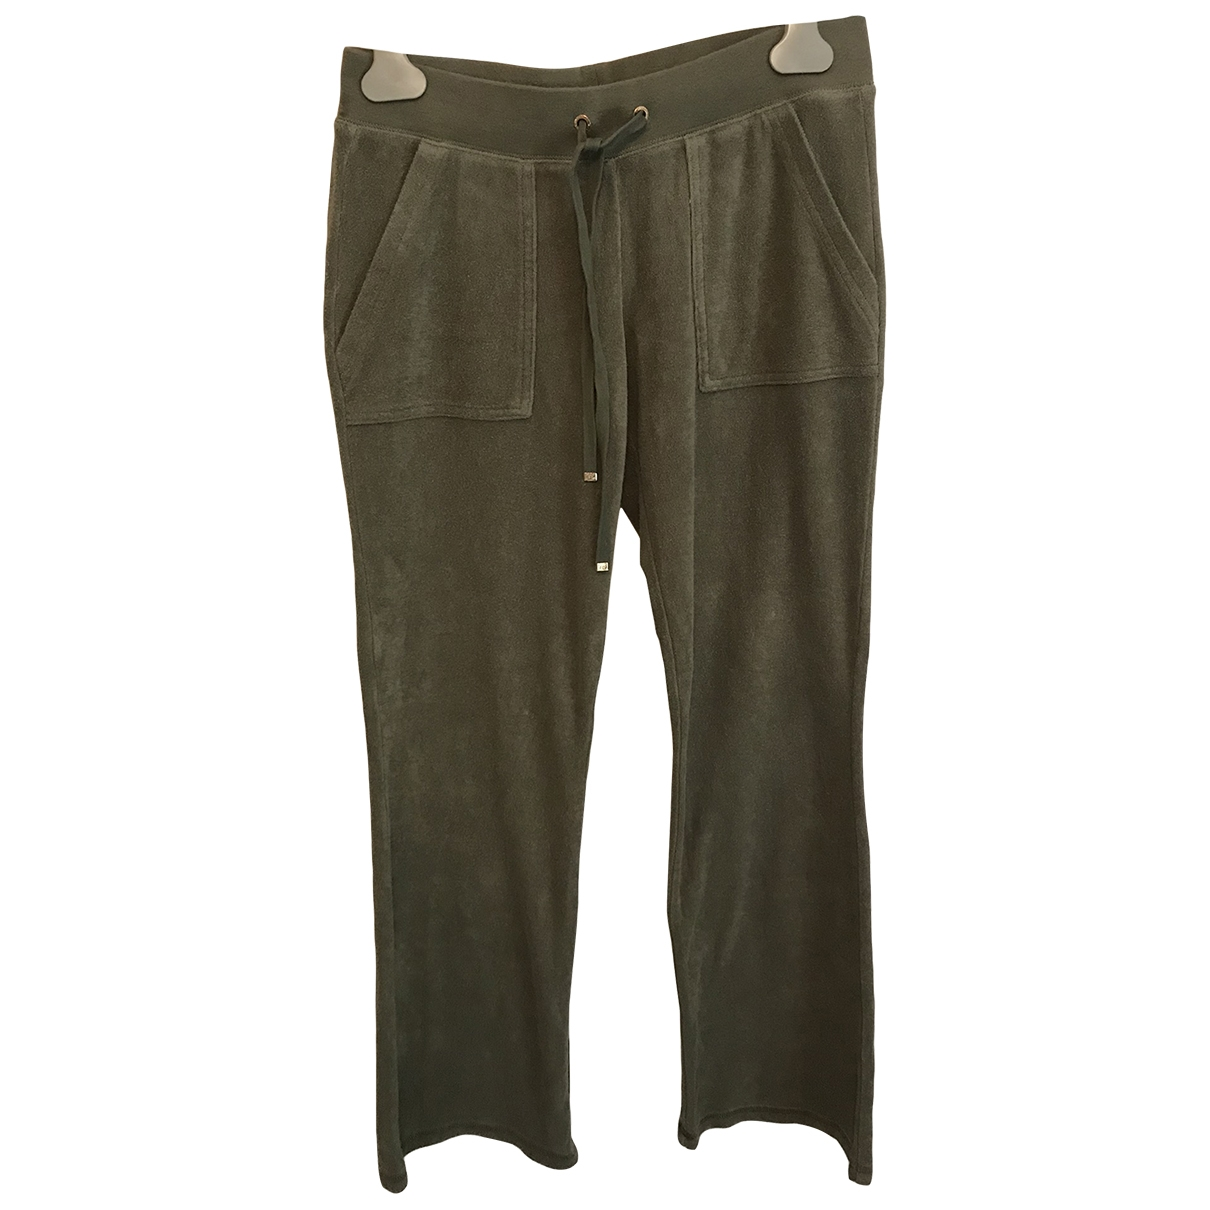 Juicy Couture \N Khaki Cotton Trousers for Women XS International